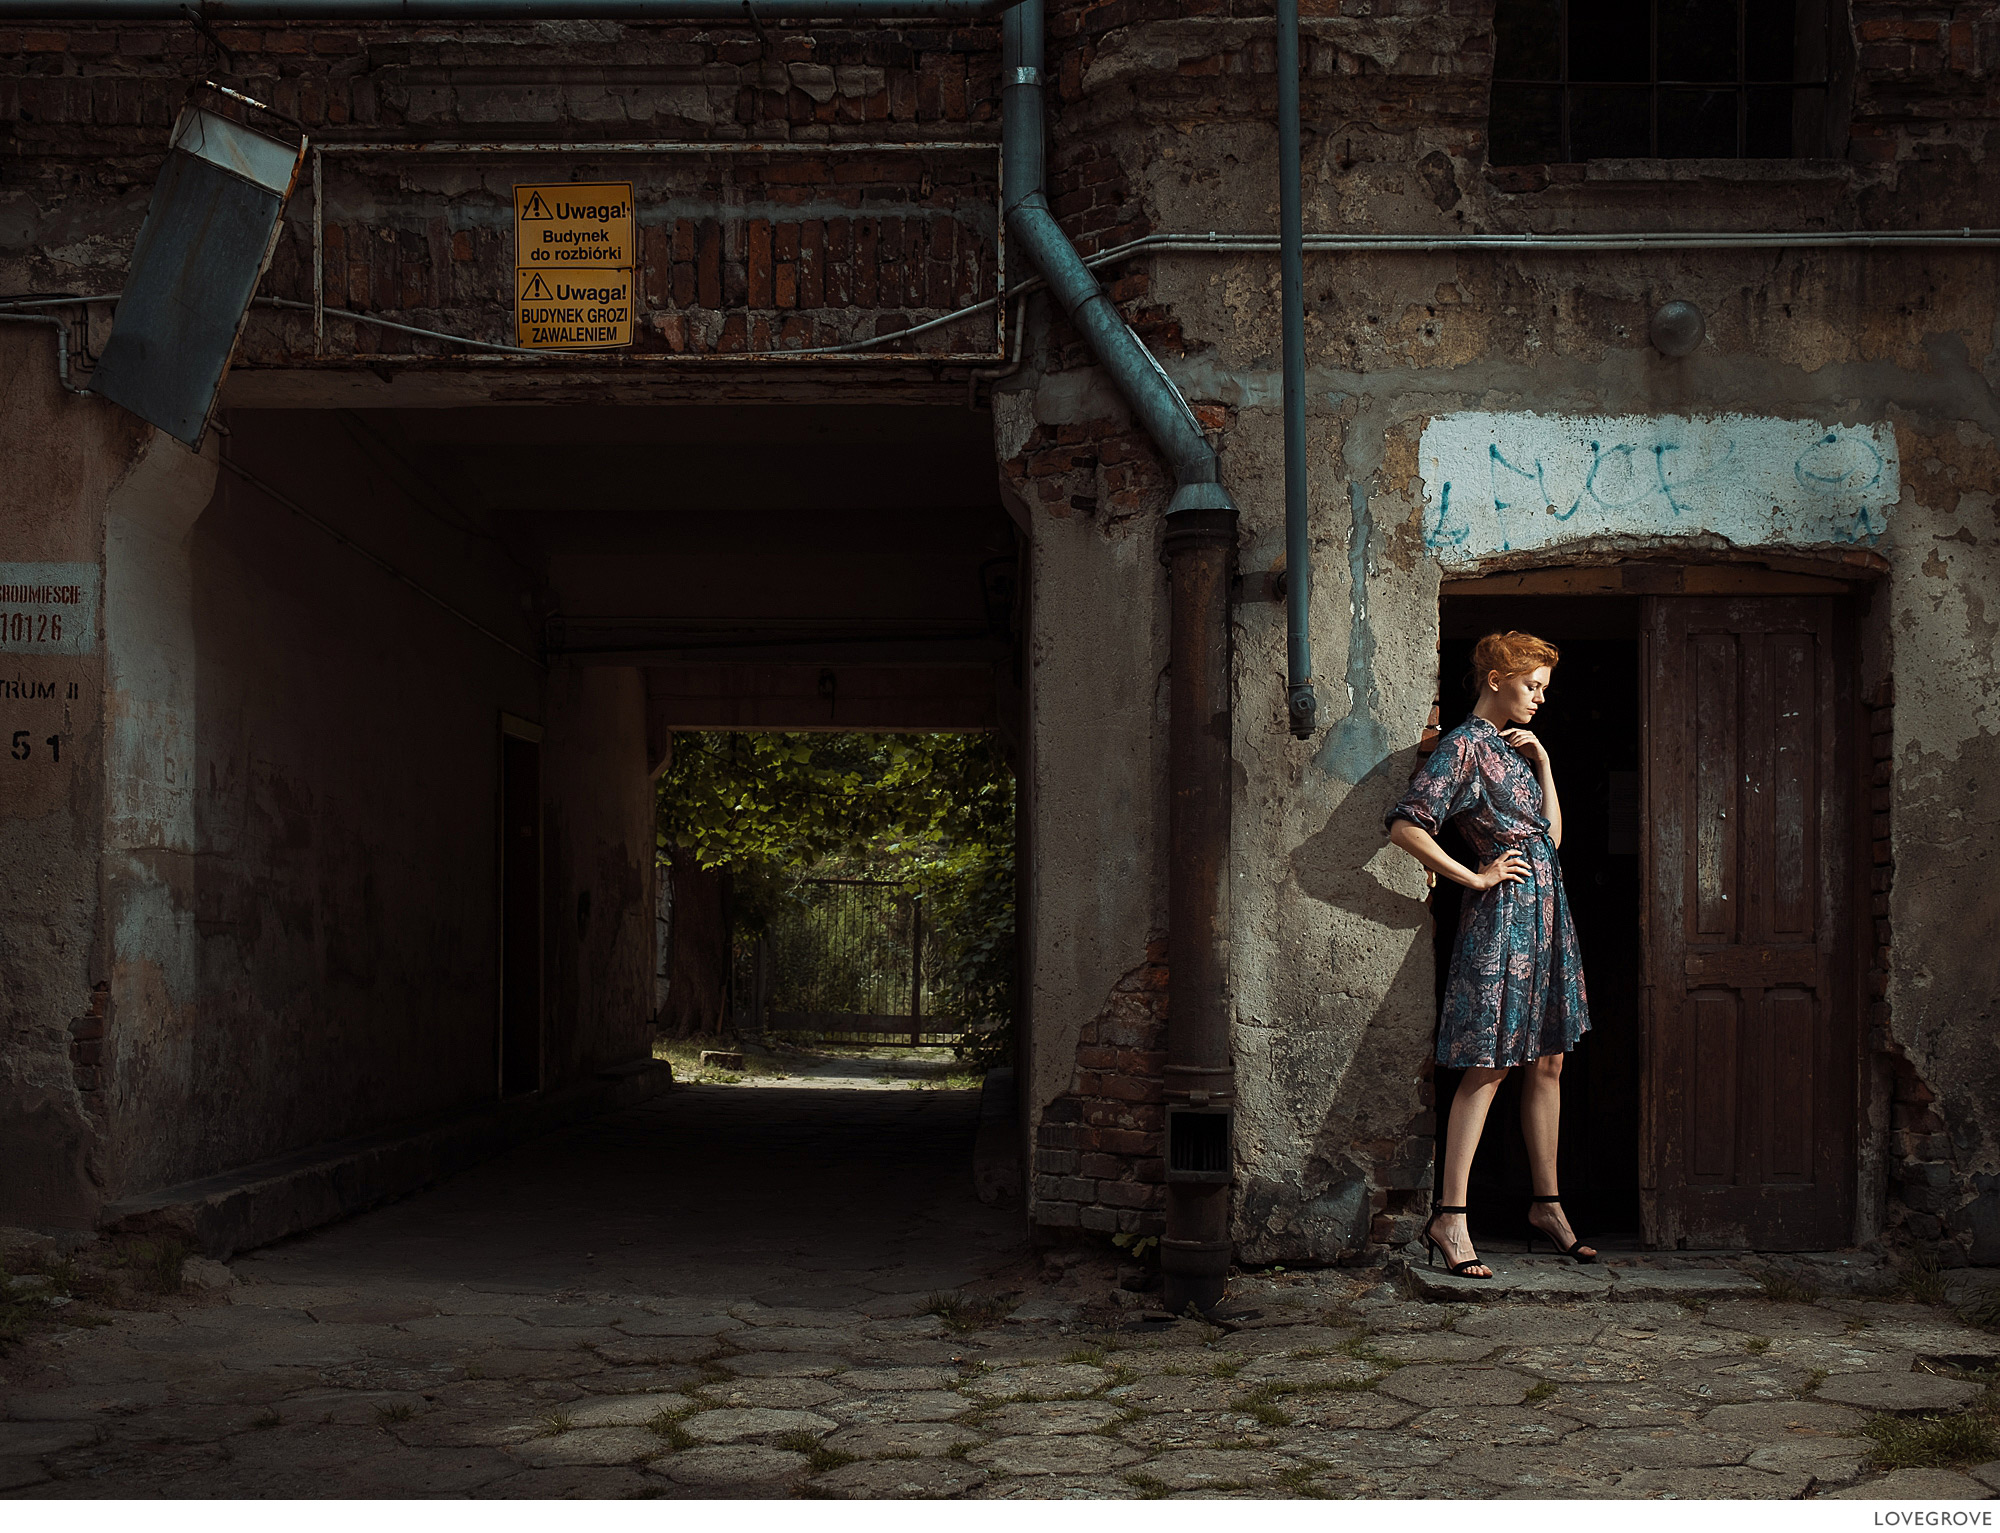 Kate in an old part of Lodz